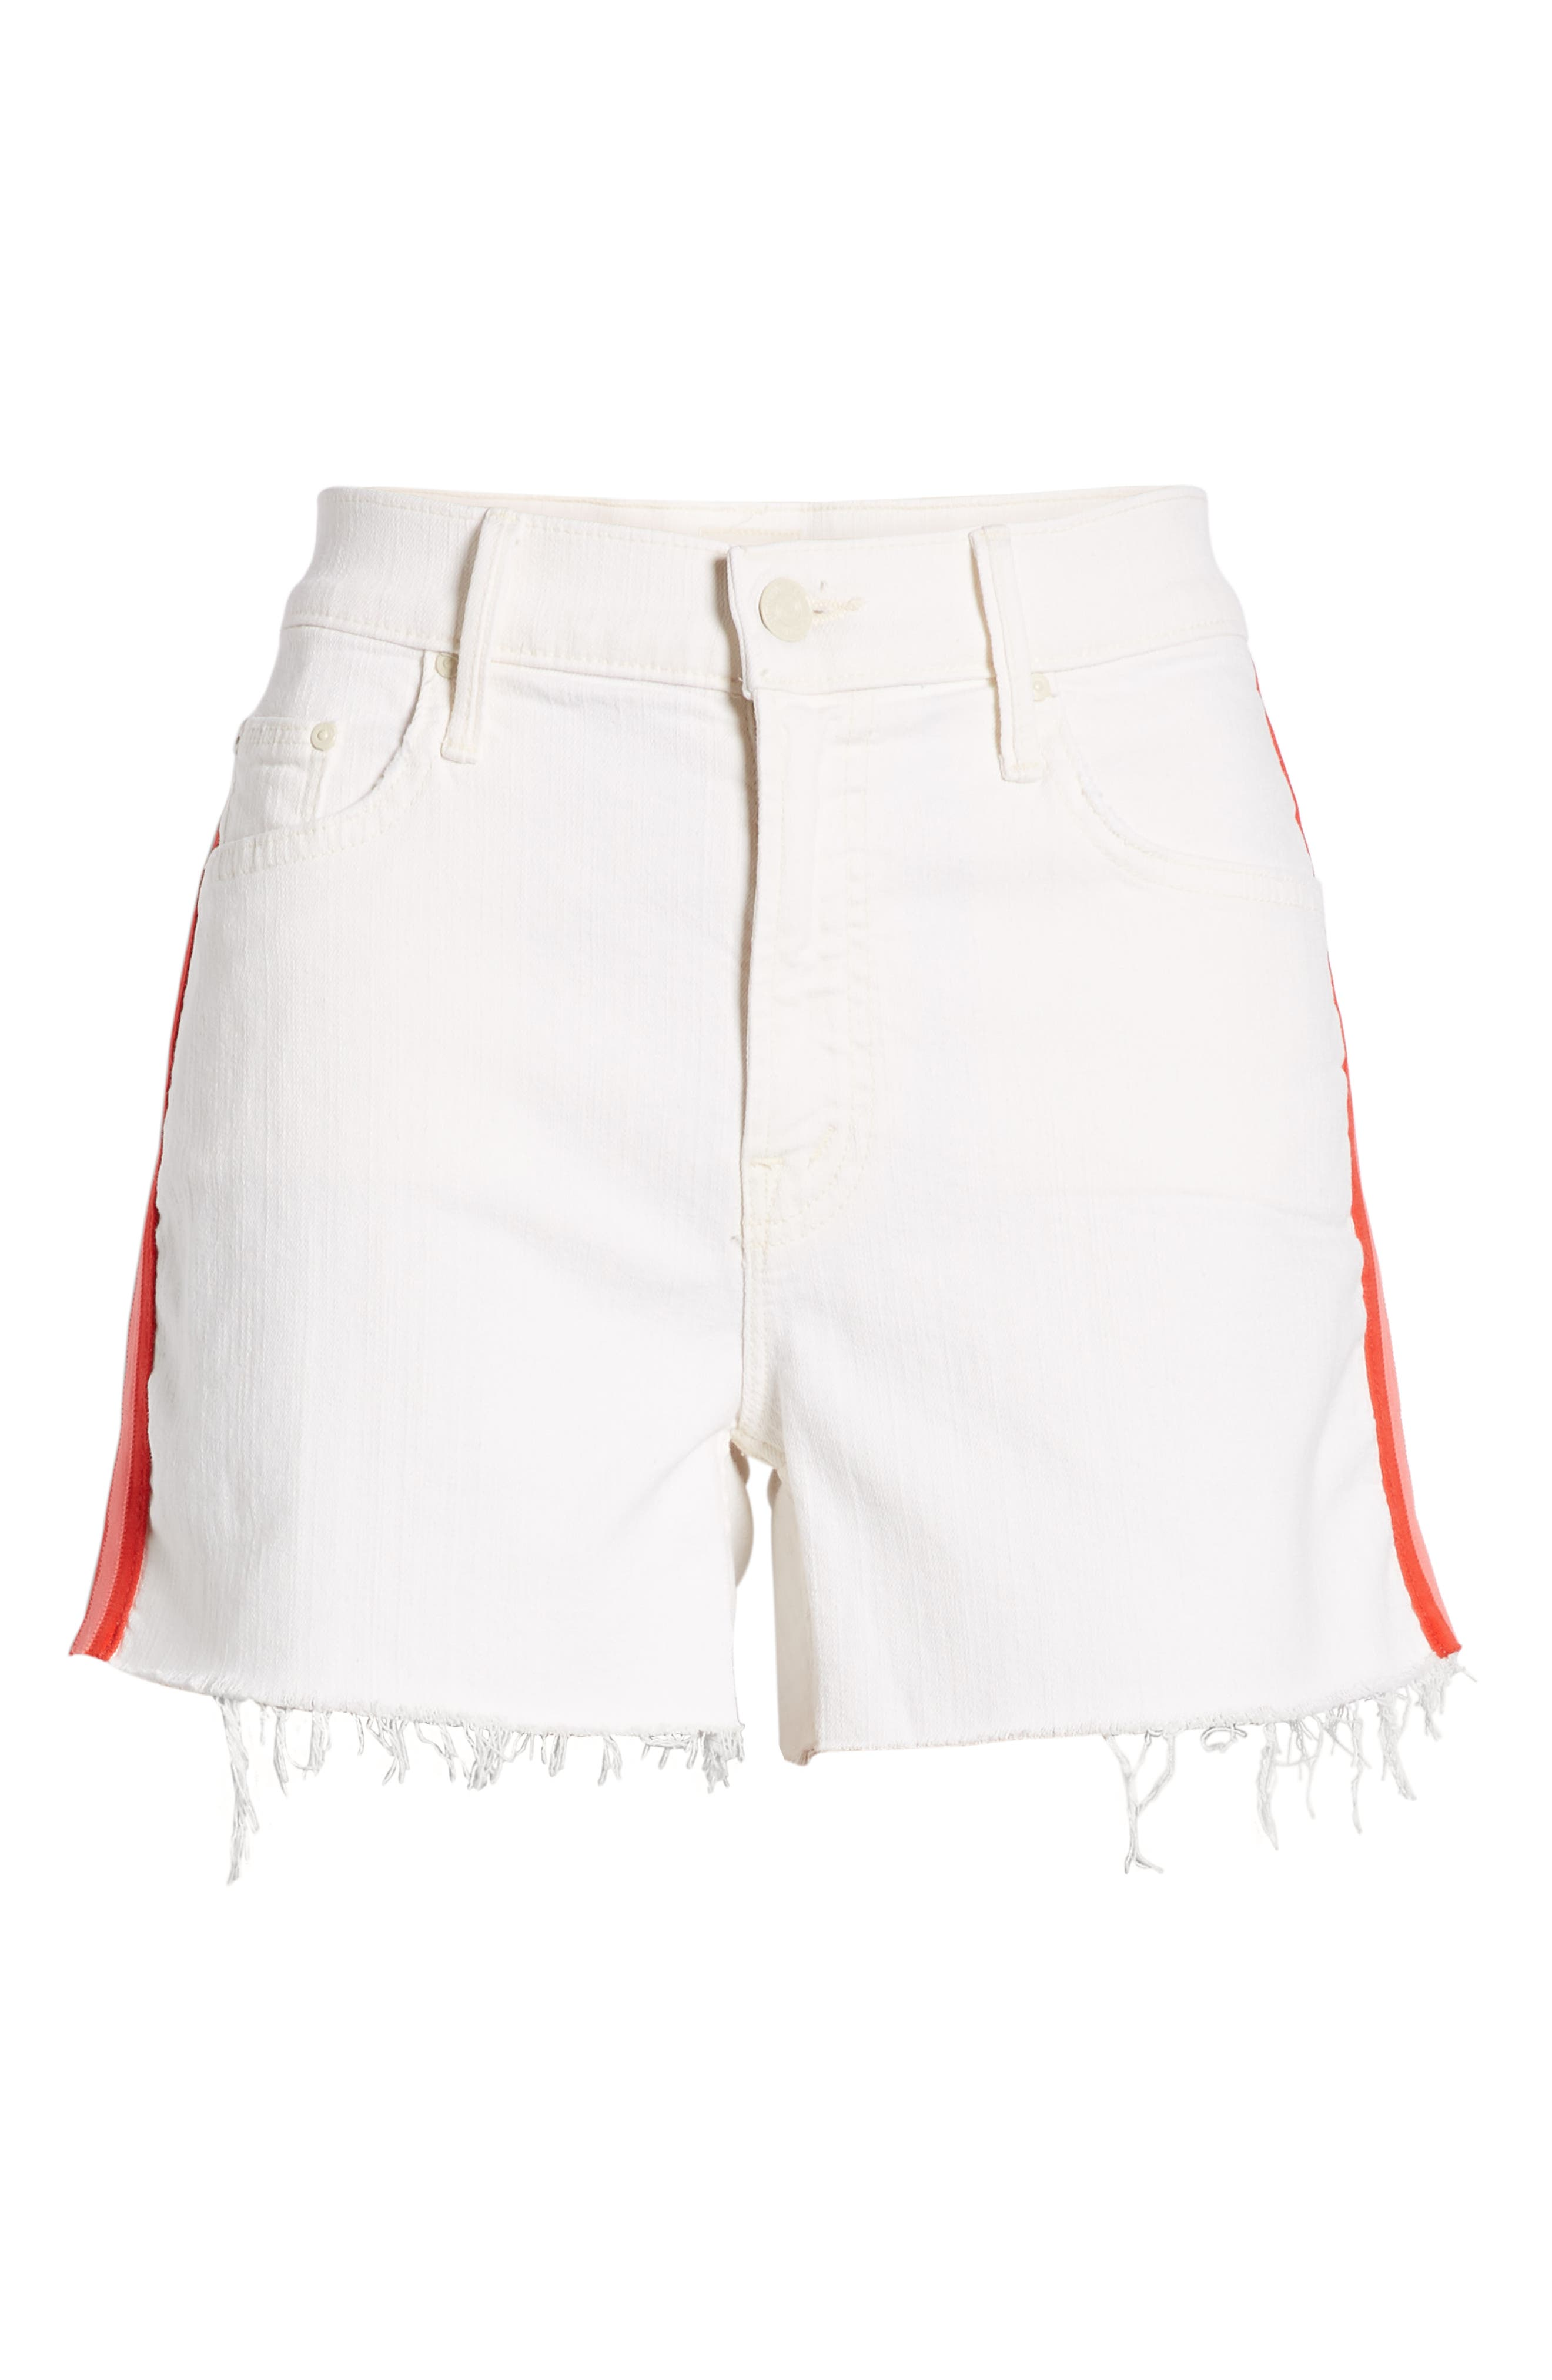 MOTHER, The Sinner Frayed Denim Shorts, Alternate thumbnail 5, color, WHIPPING THE CREAM PINK RACER